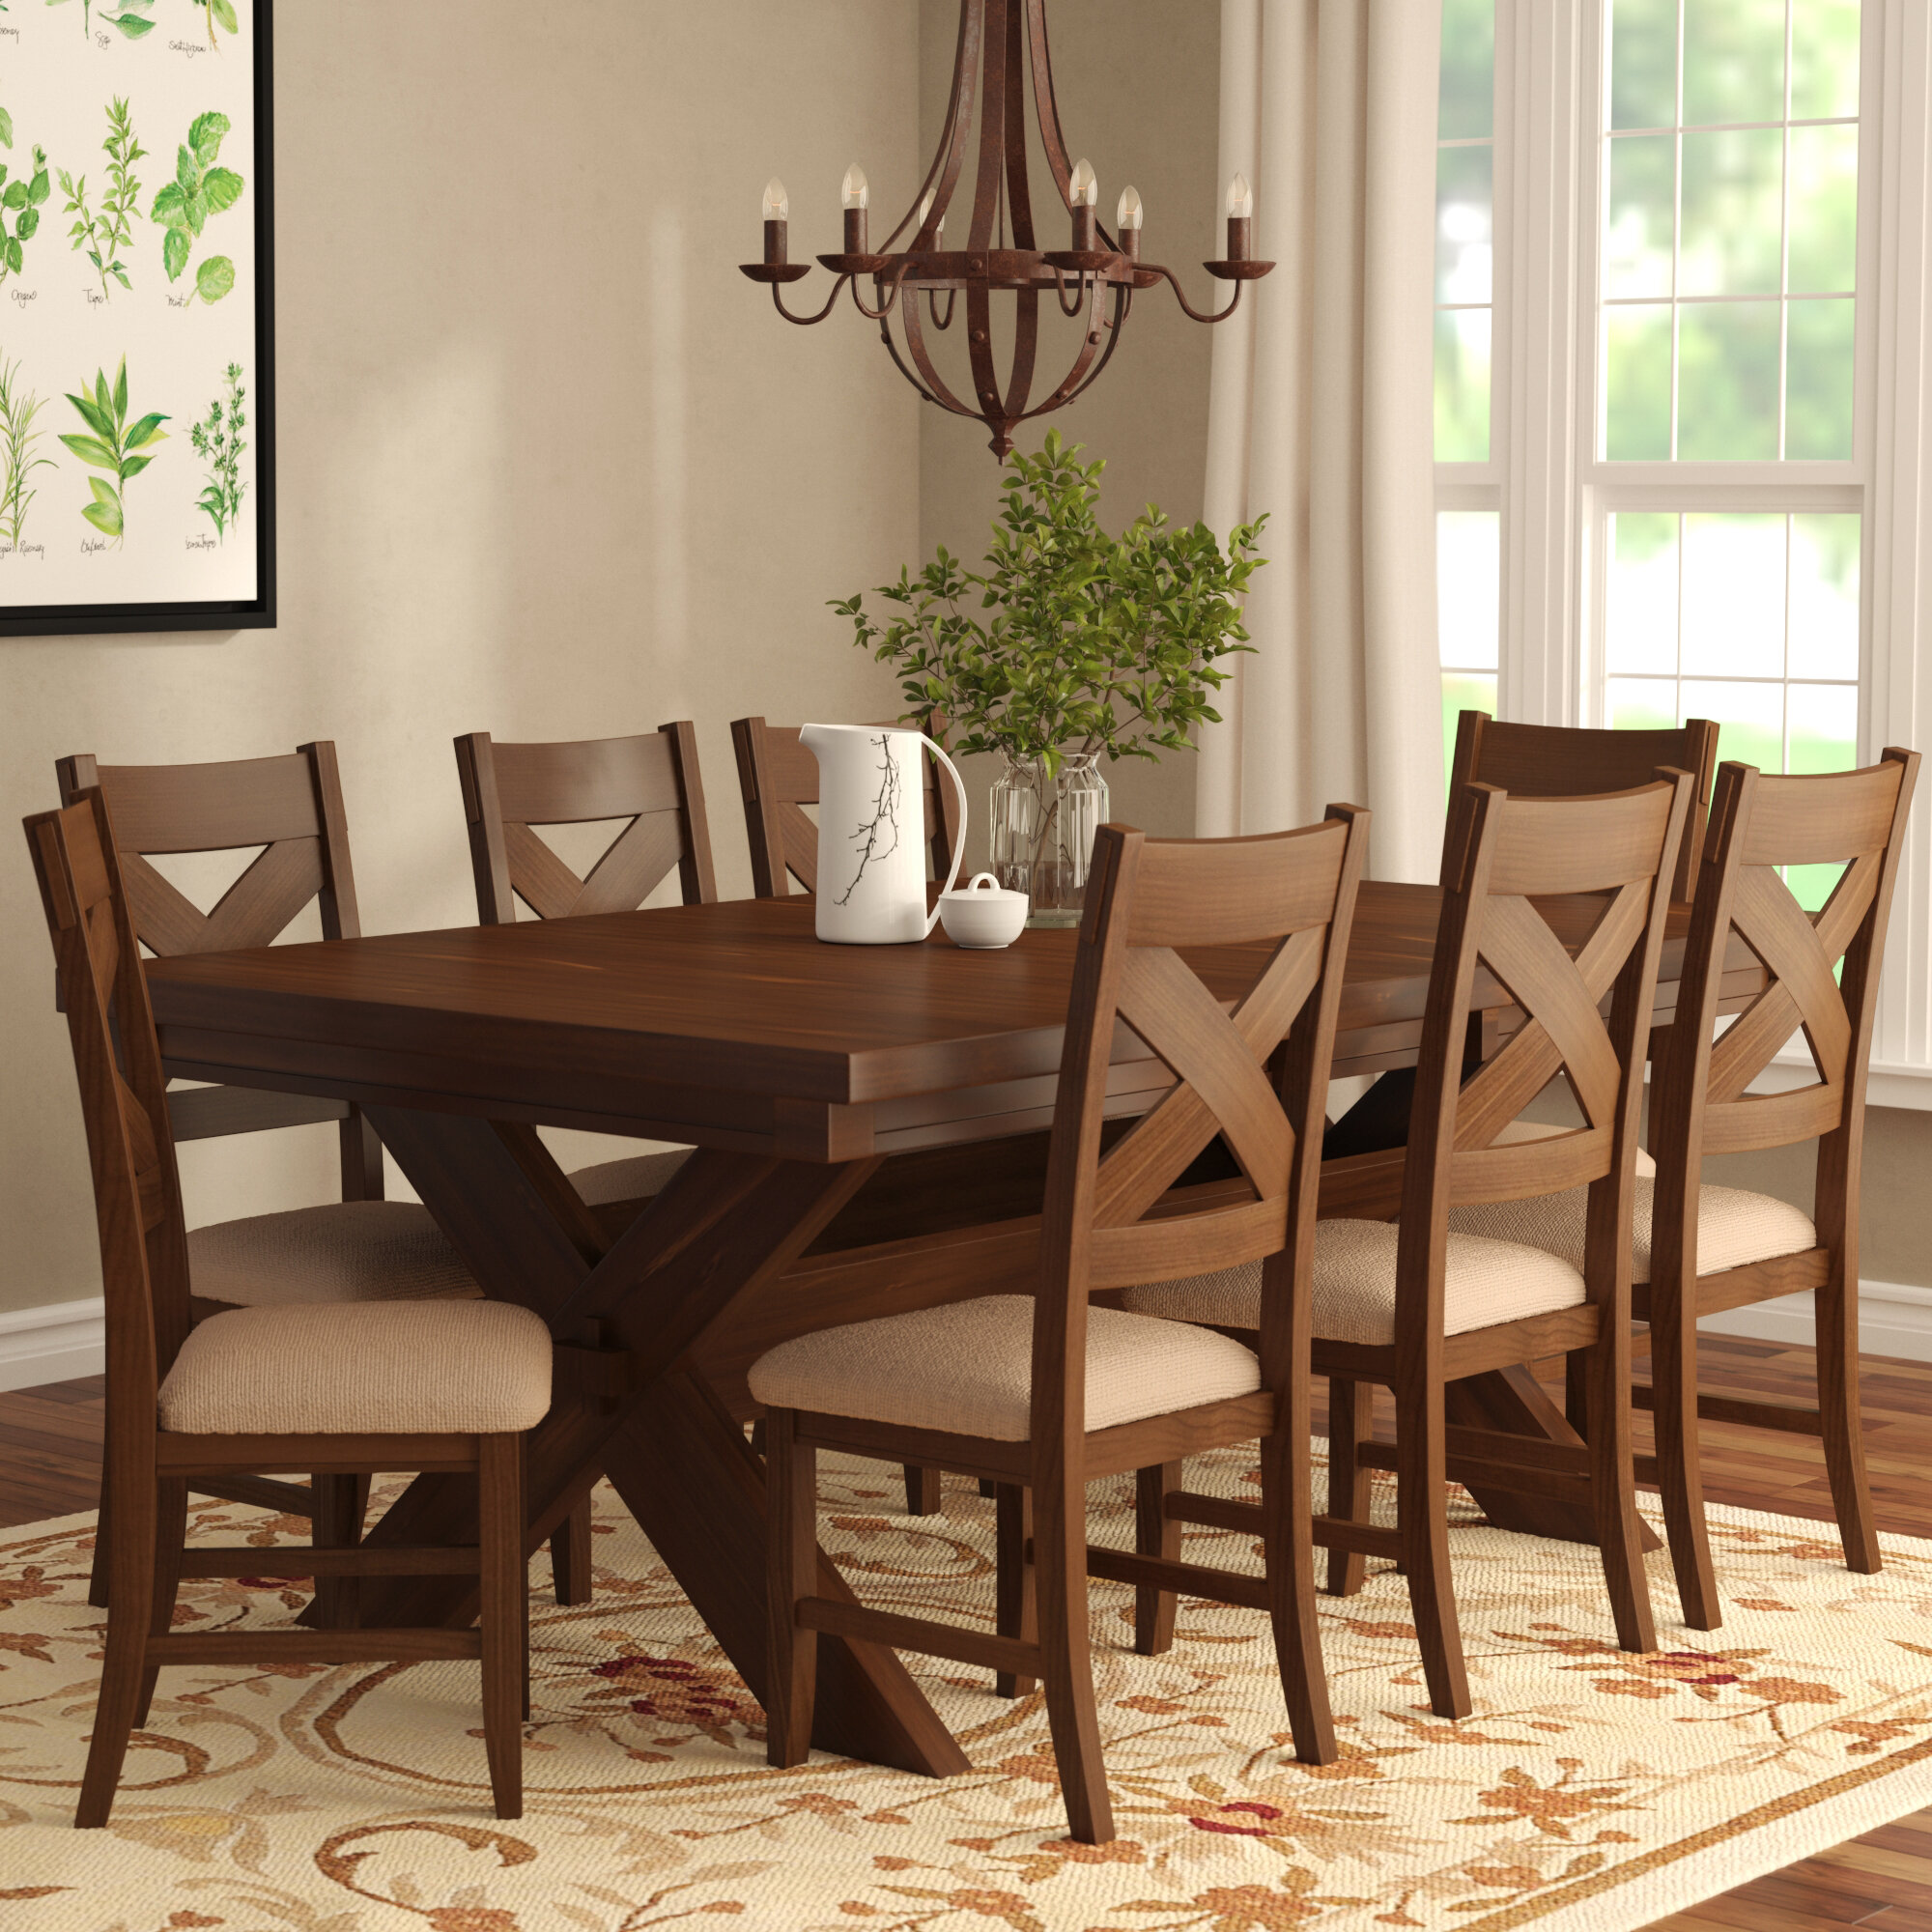 Laurel Foundry Modern Farmhouse Isabell 9 Piece Dining Set ...